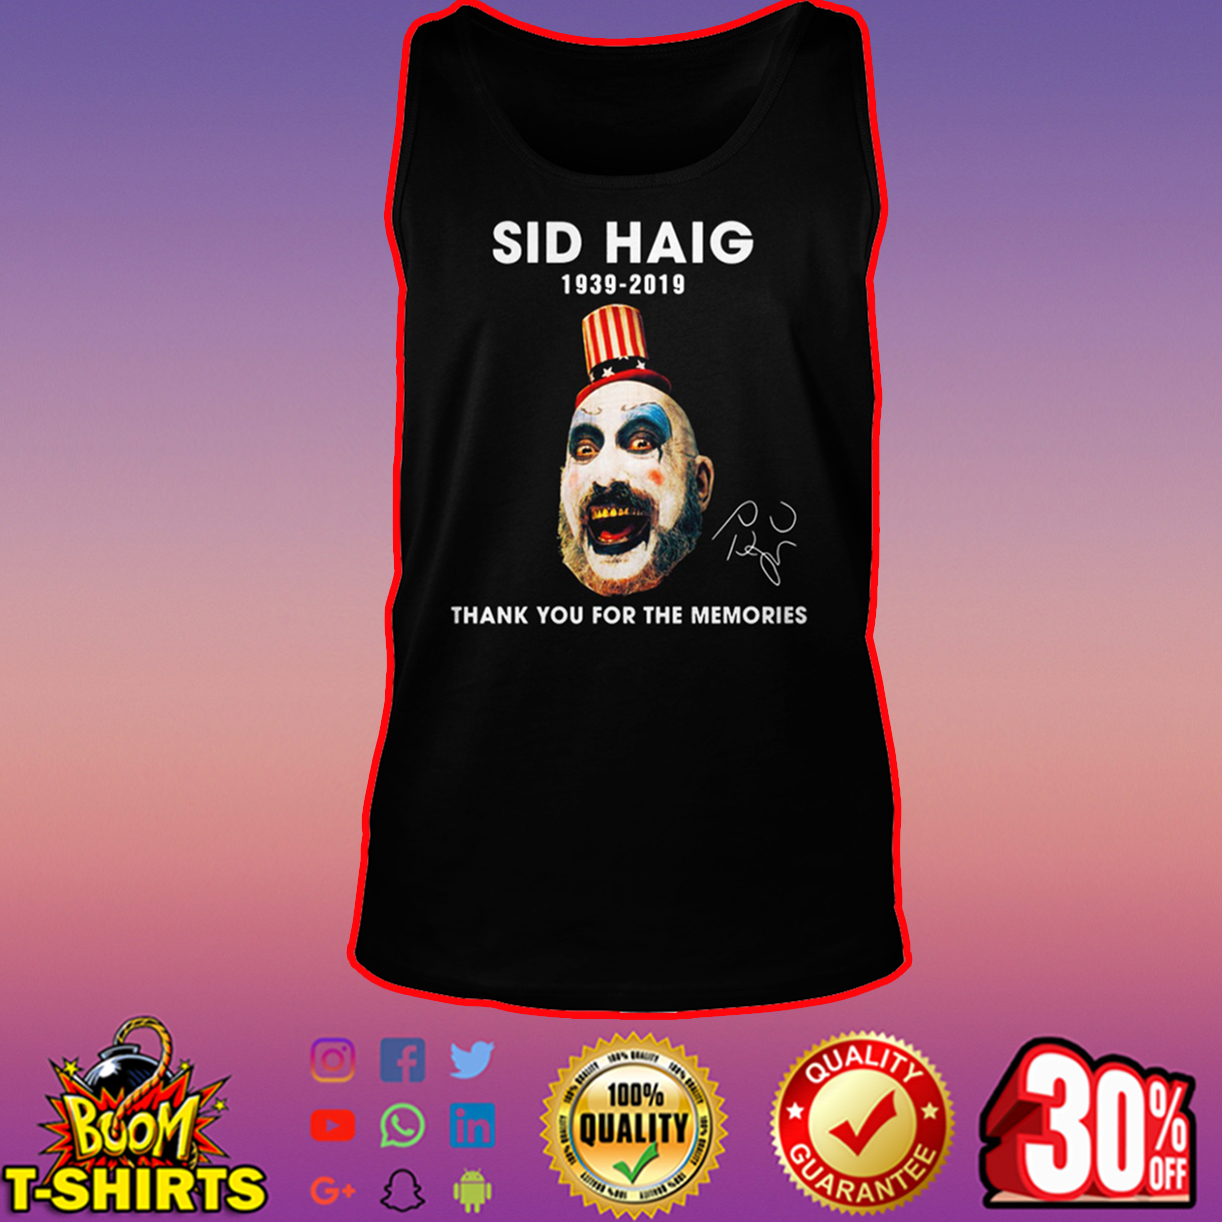 Sid Haig 1939-2019 thank you for the memories tank top